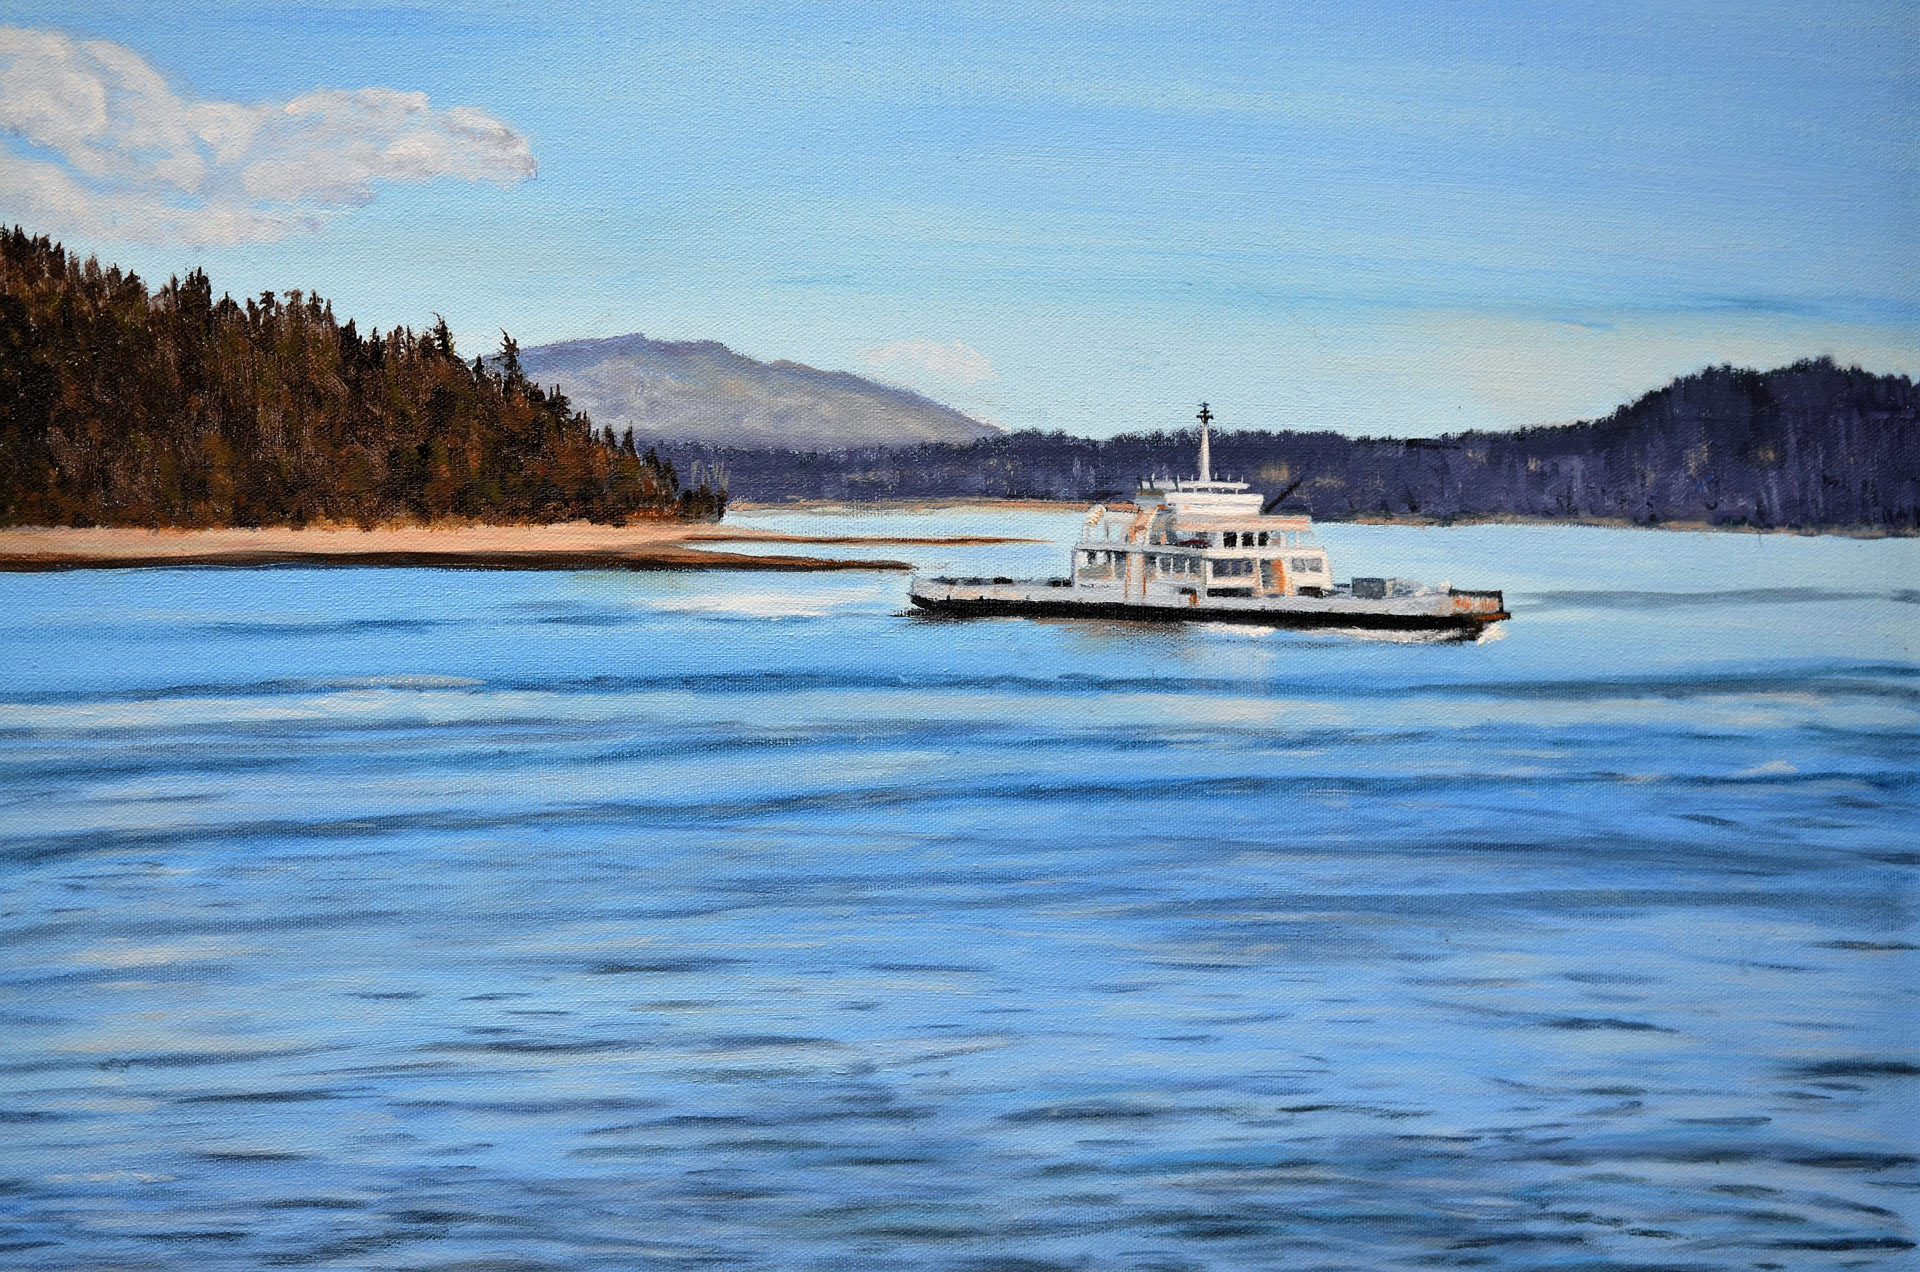 Ferry to Bowen Island - Painting by Sandra Cattermole